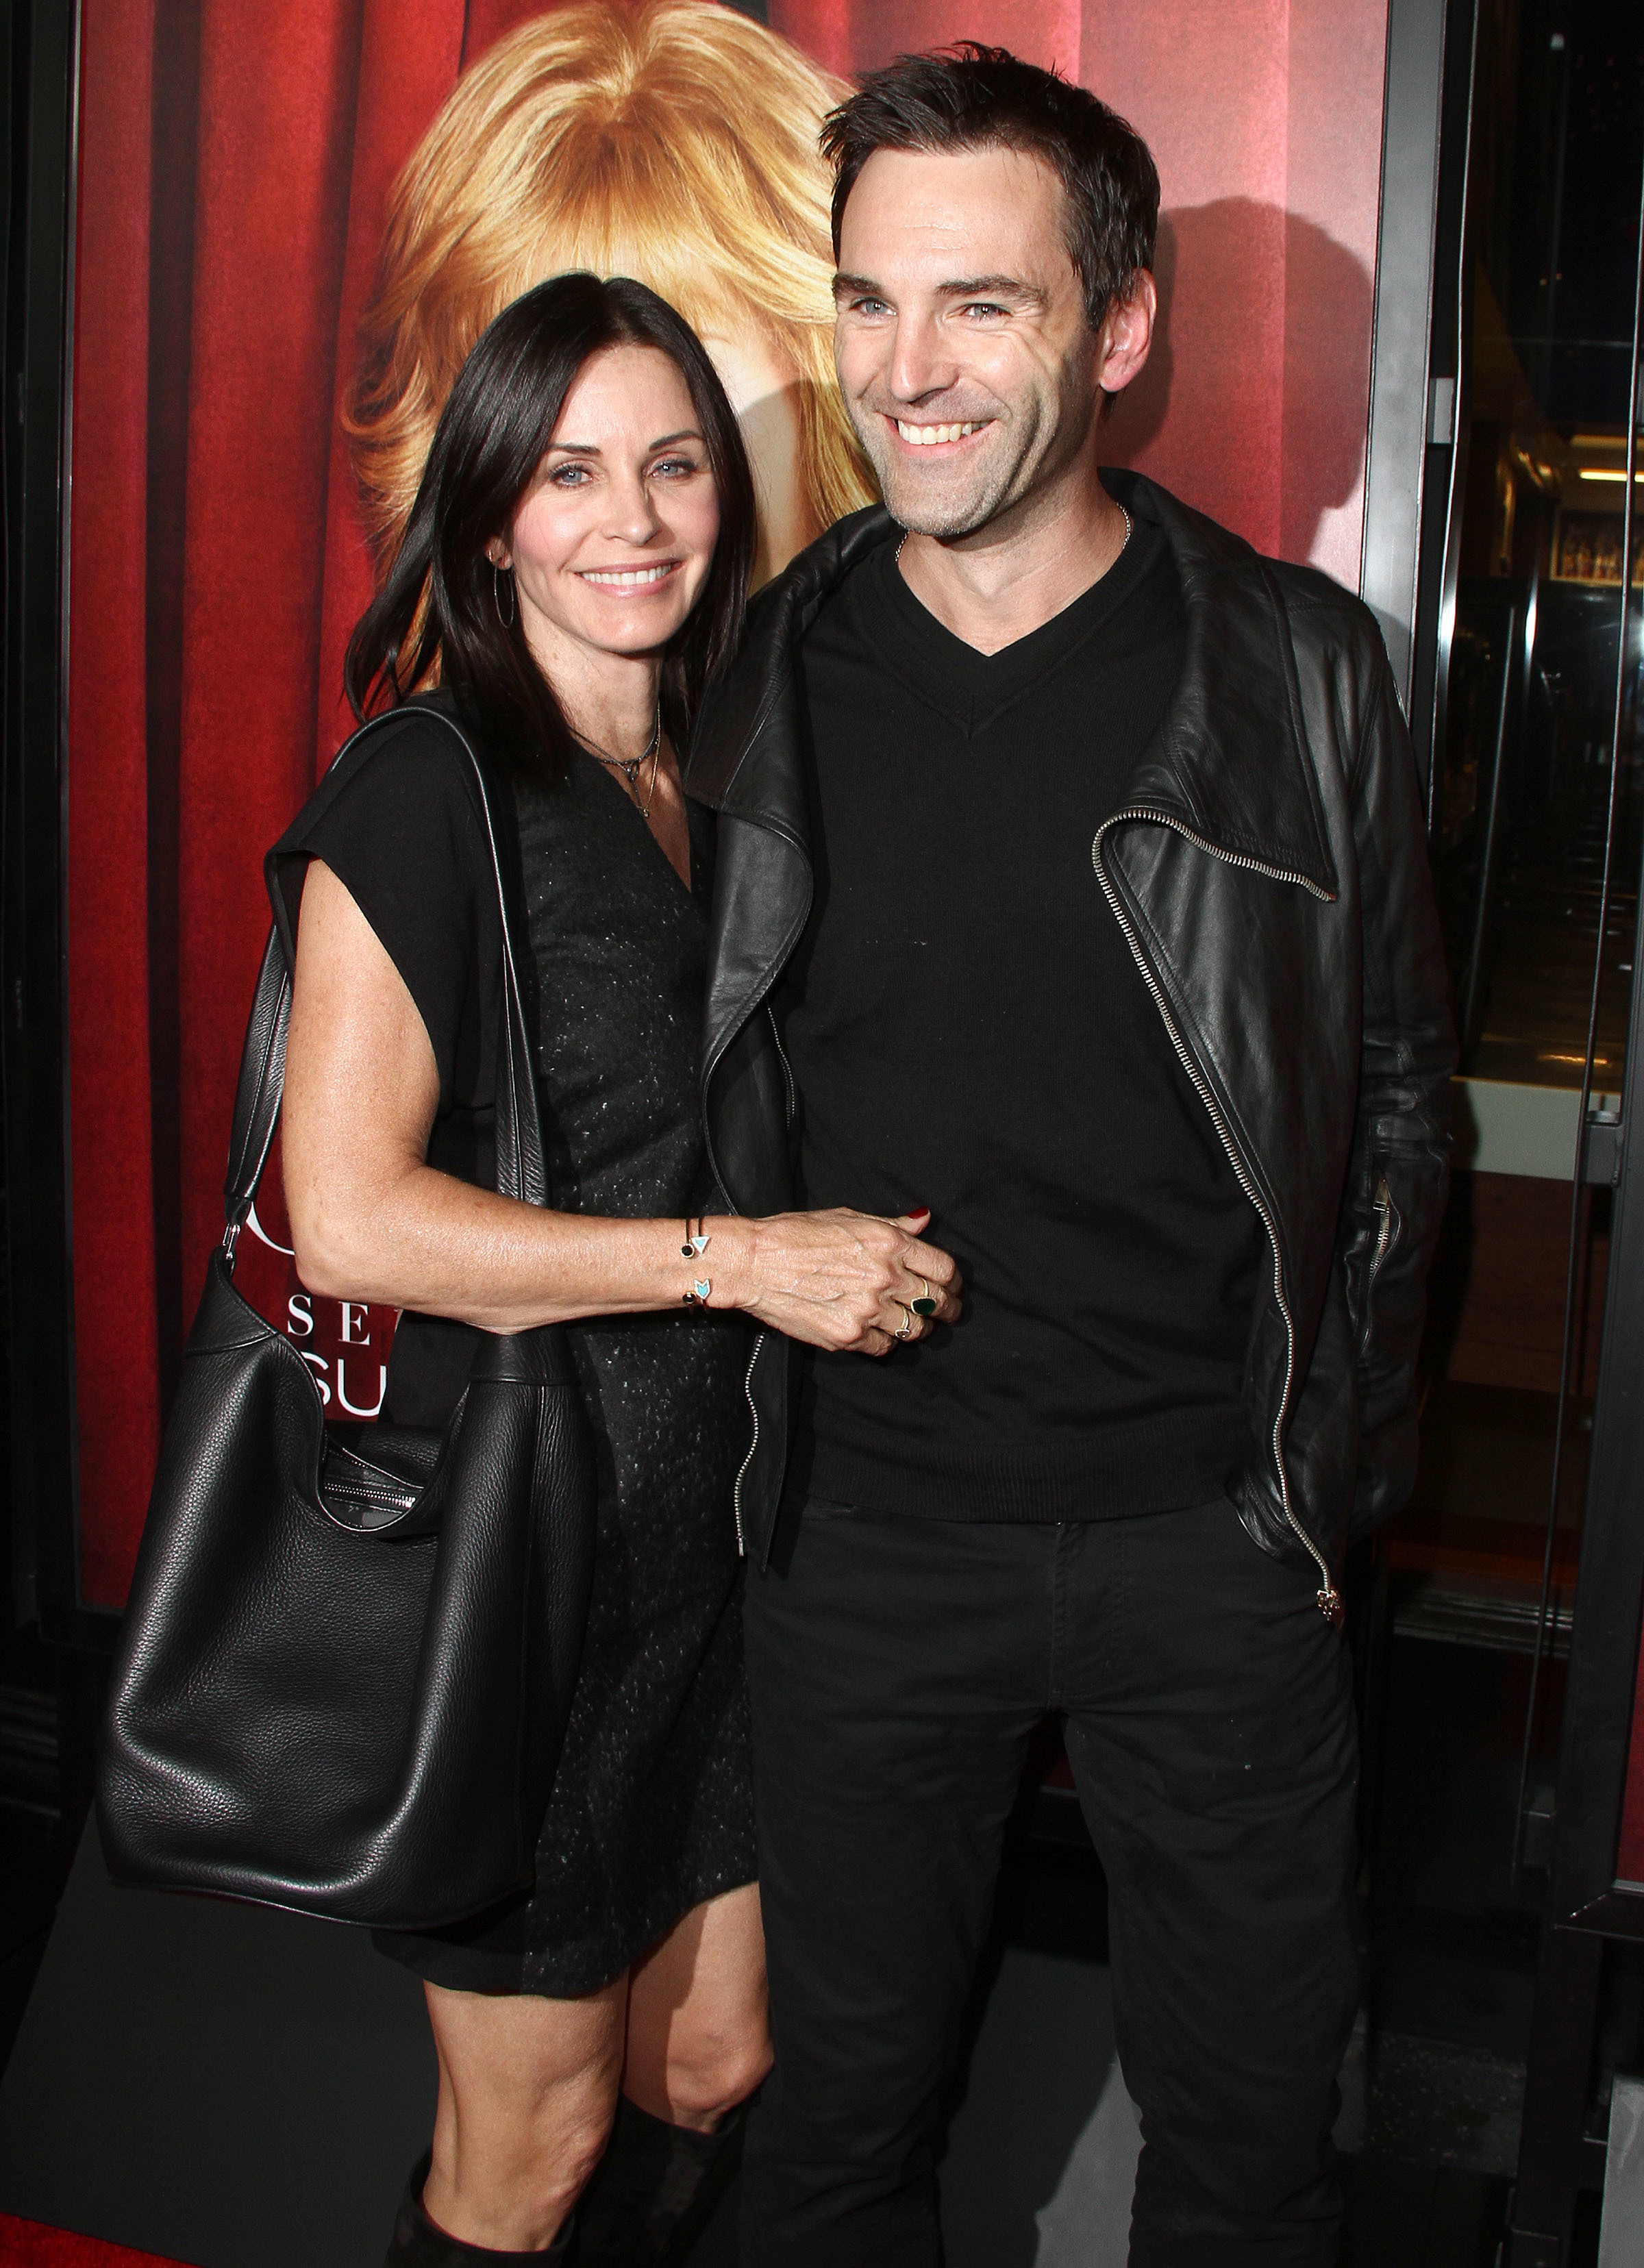 Courteney Cox and Johnny McDaid share a sweet goodbye